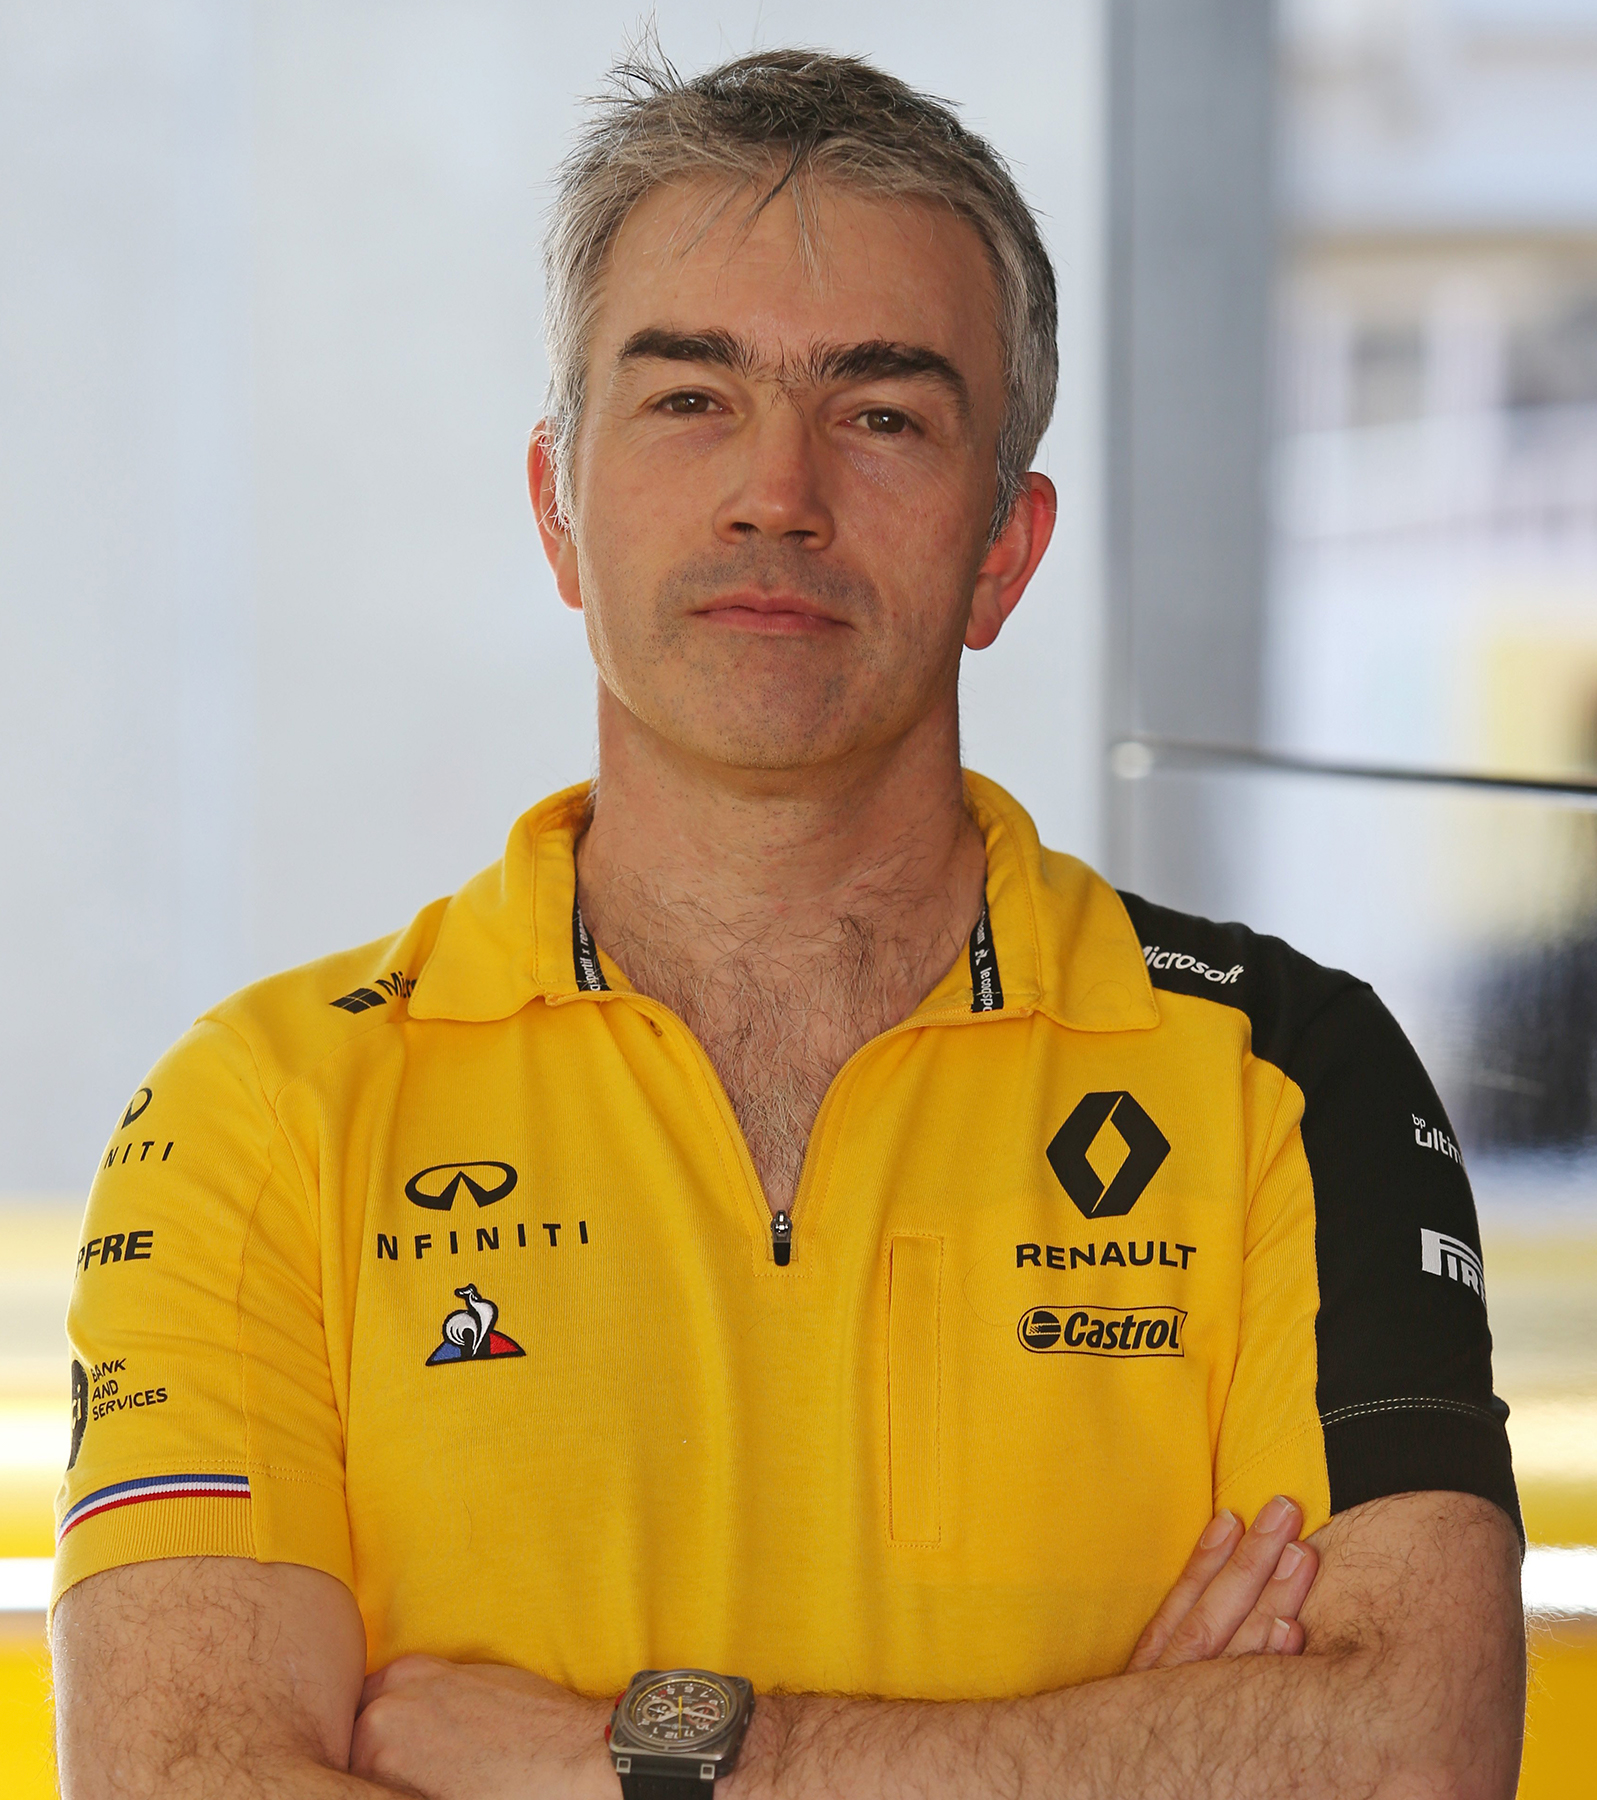 INFINITI and Renault F1™ Team Technical Director Nick Chester